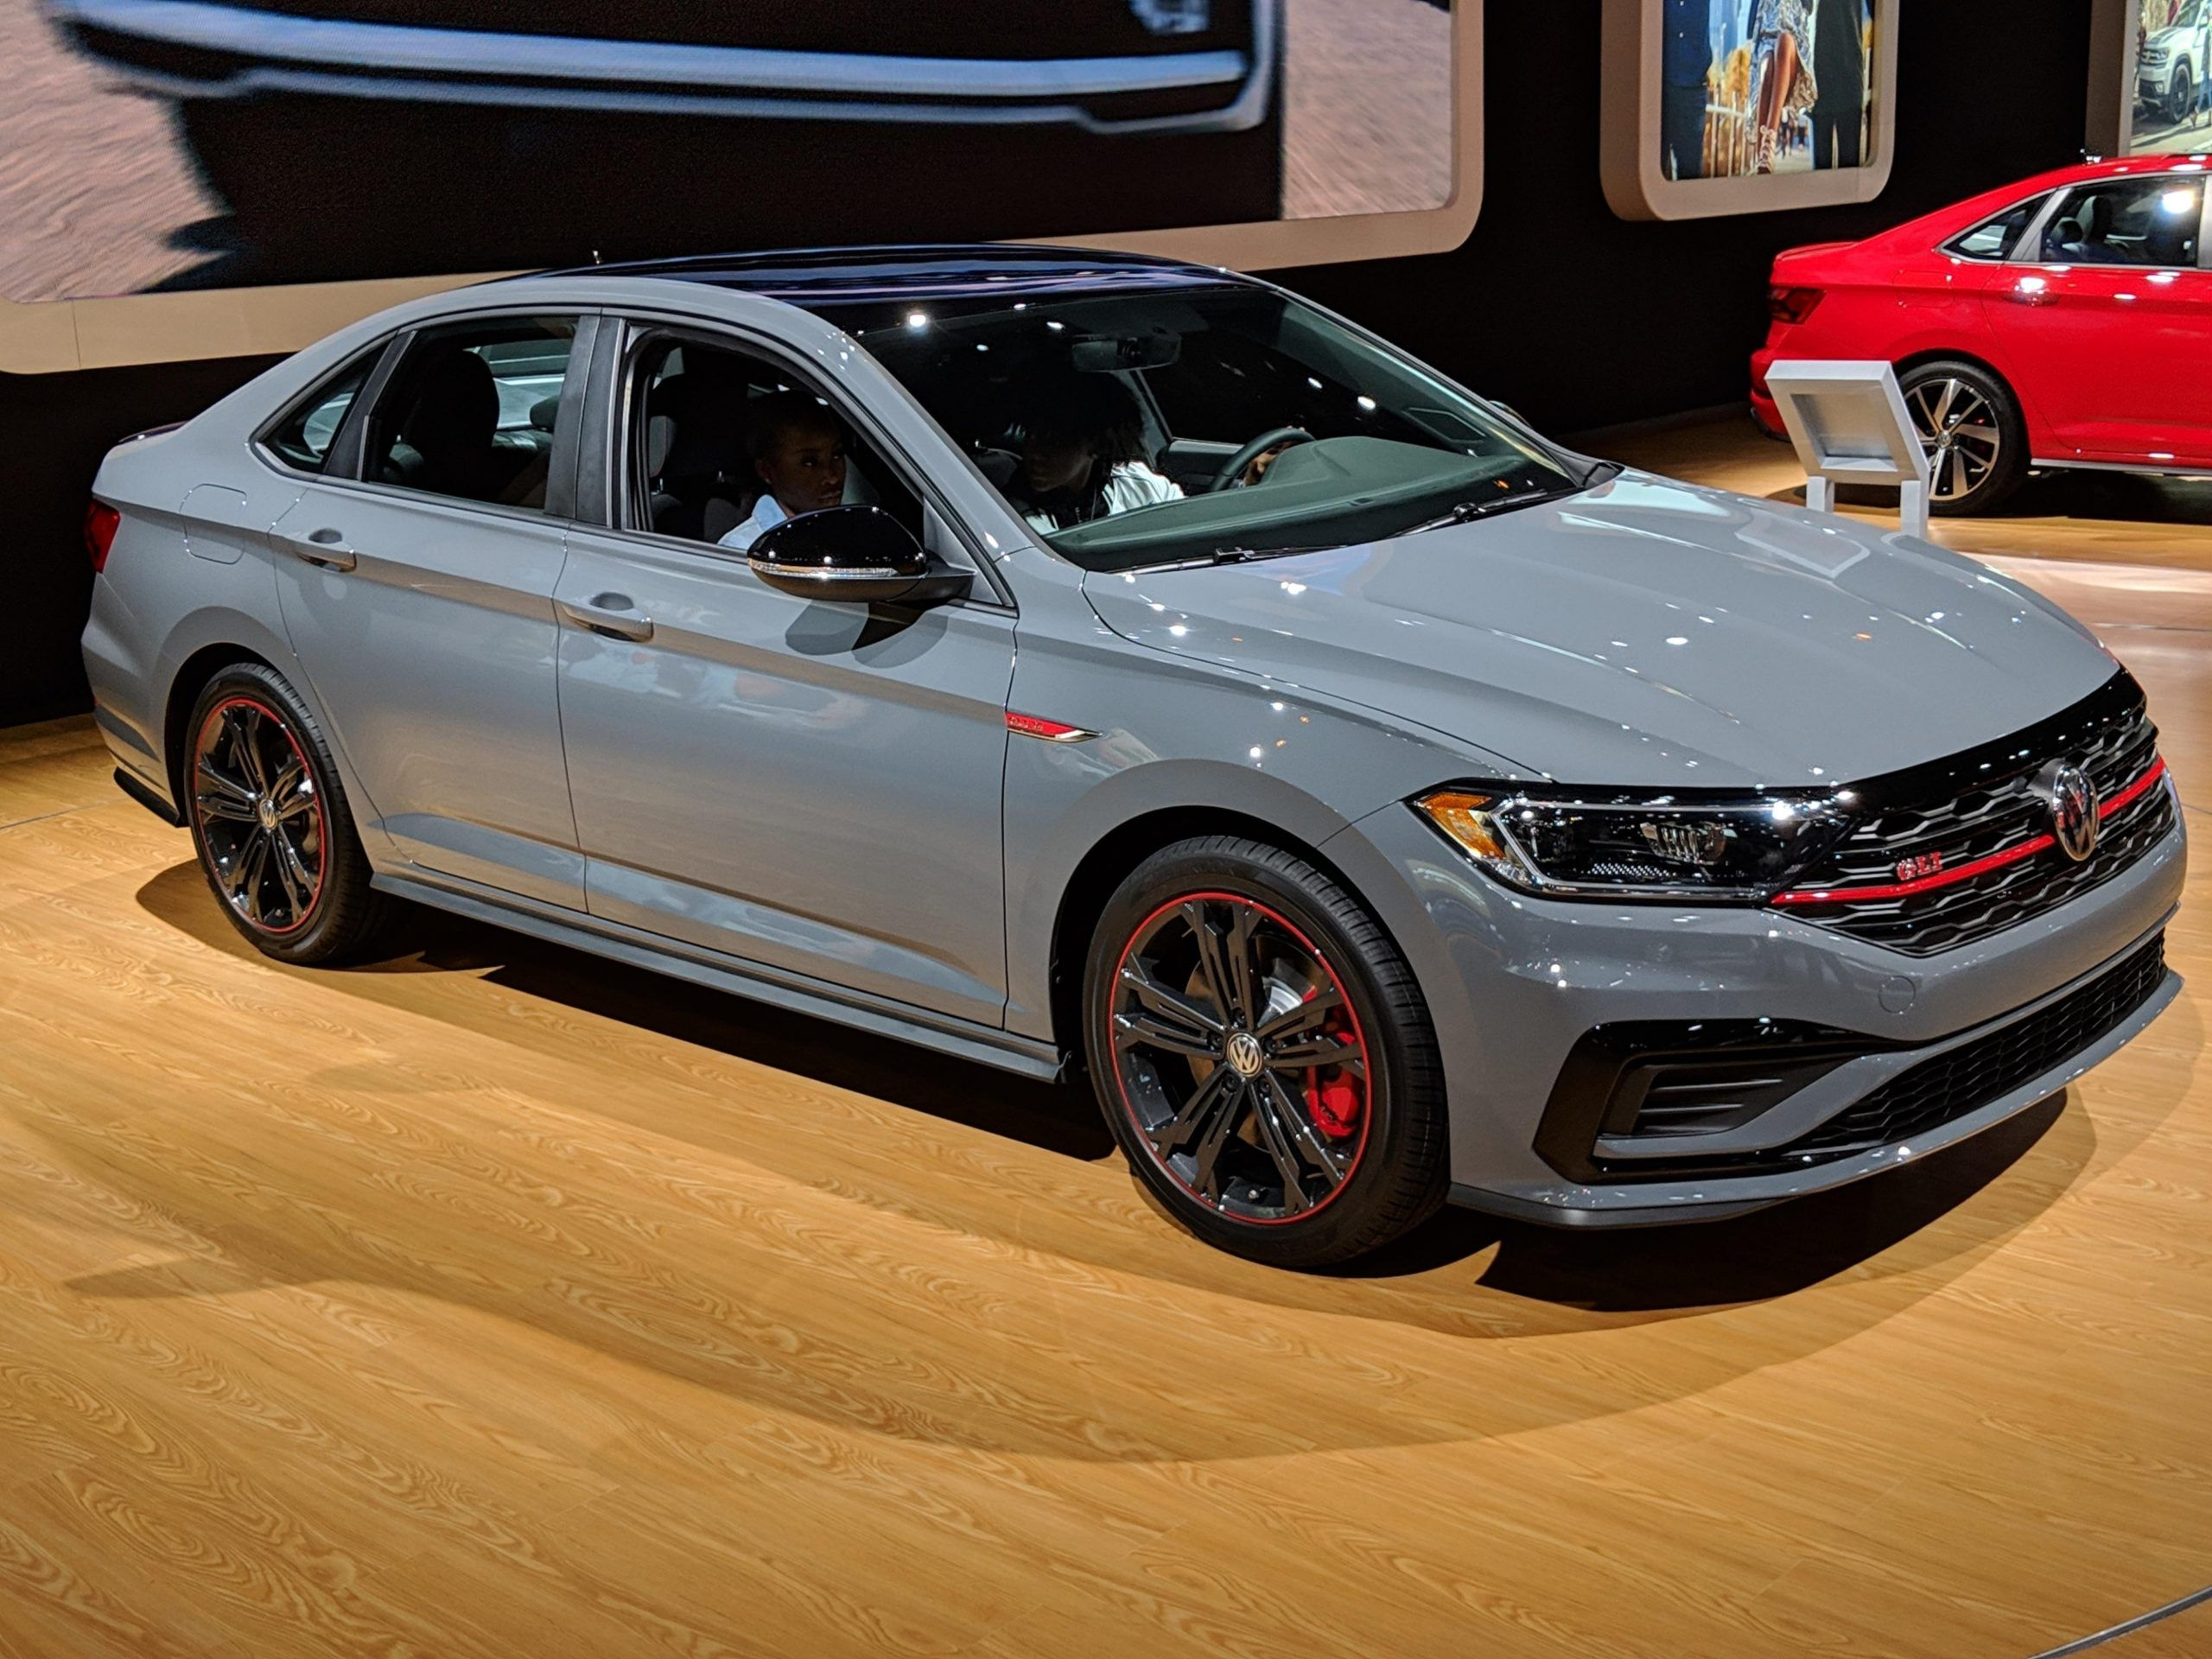 2020 Vw Jetta Tdi Rumors